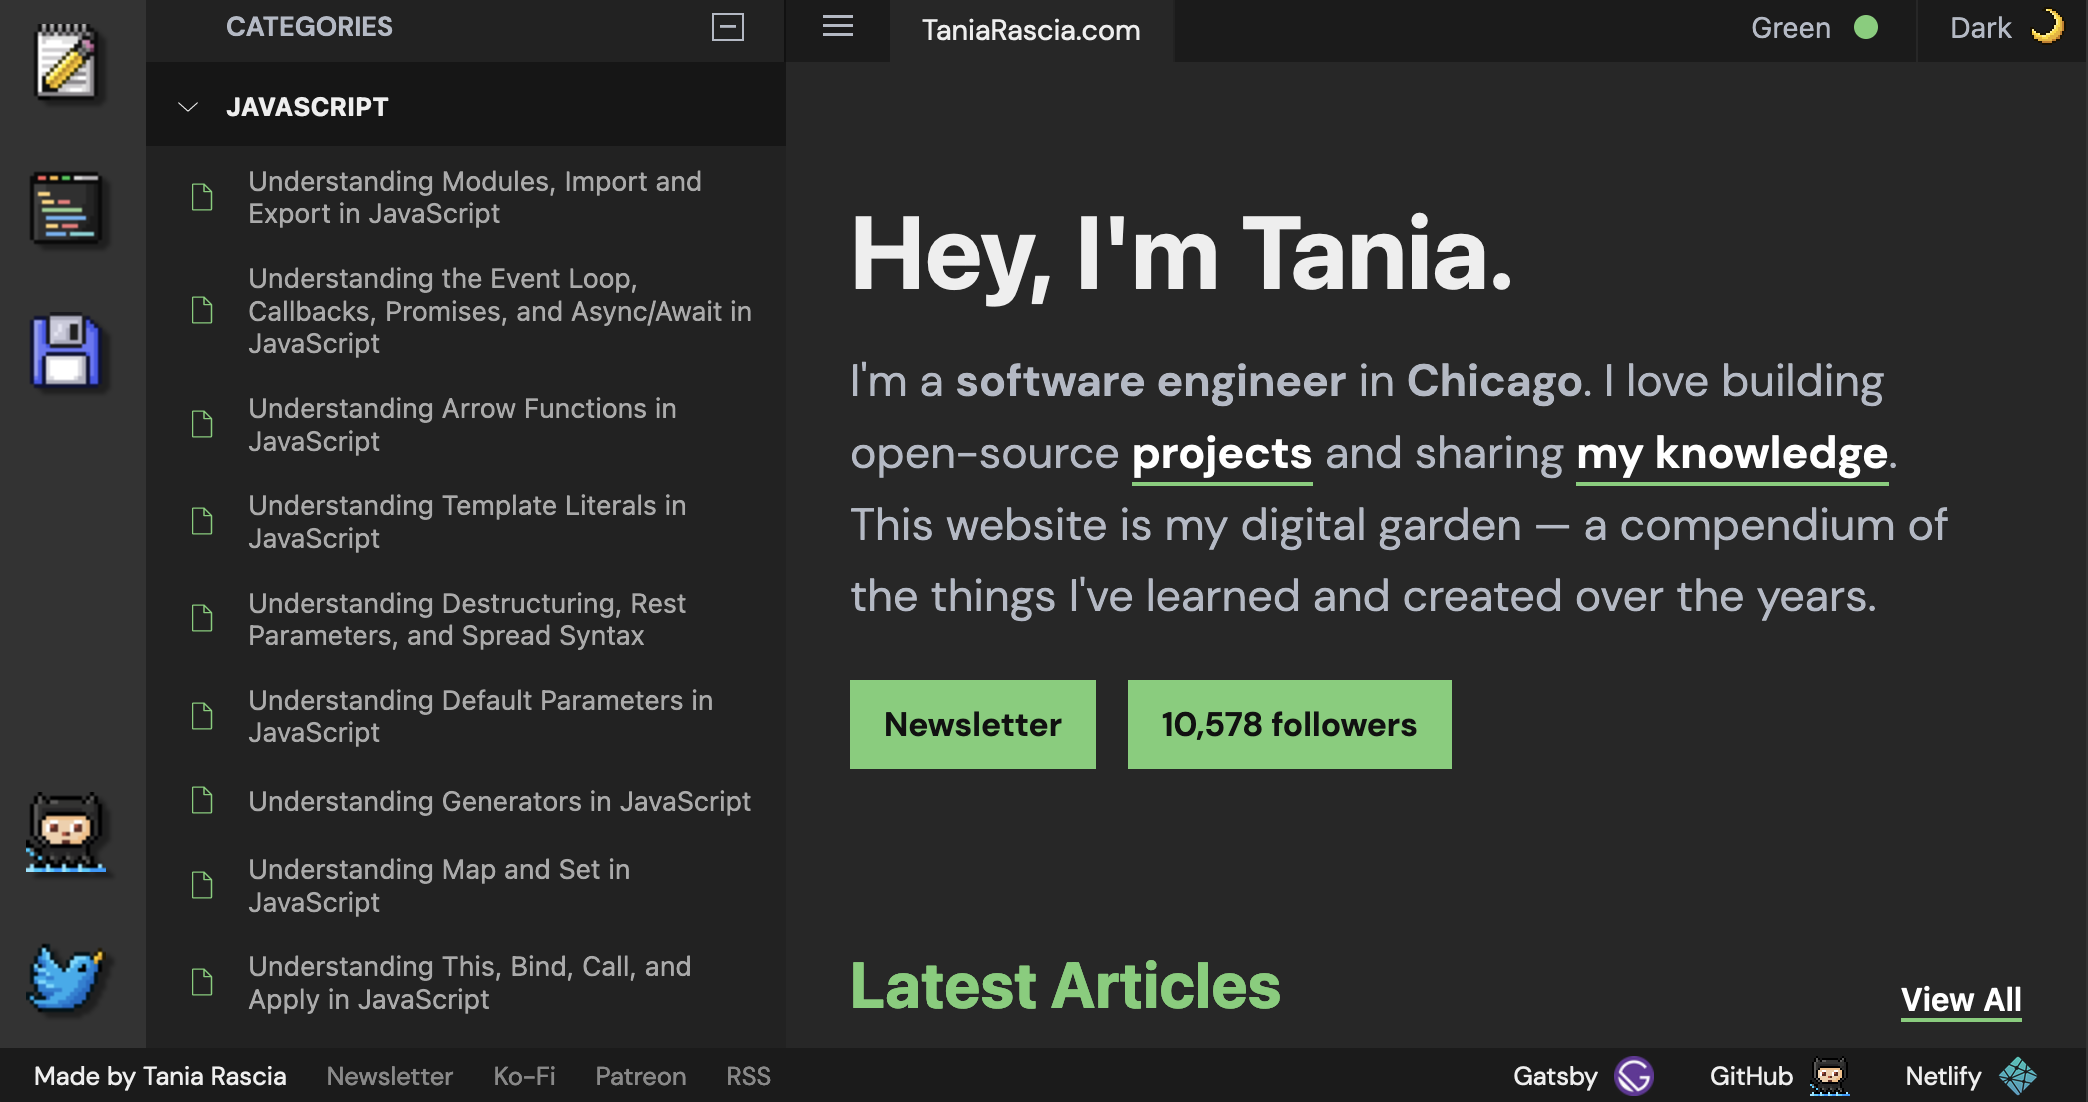 Tania's website being styled like VS Code